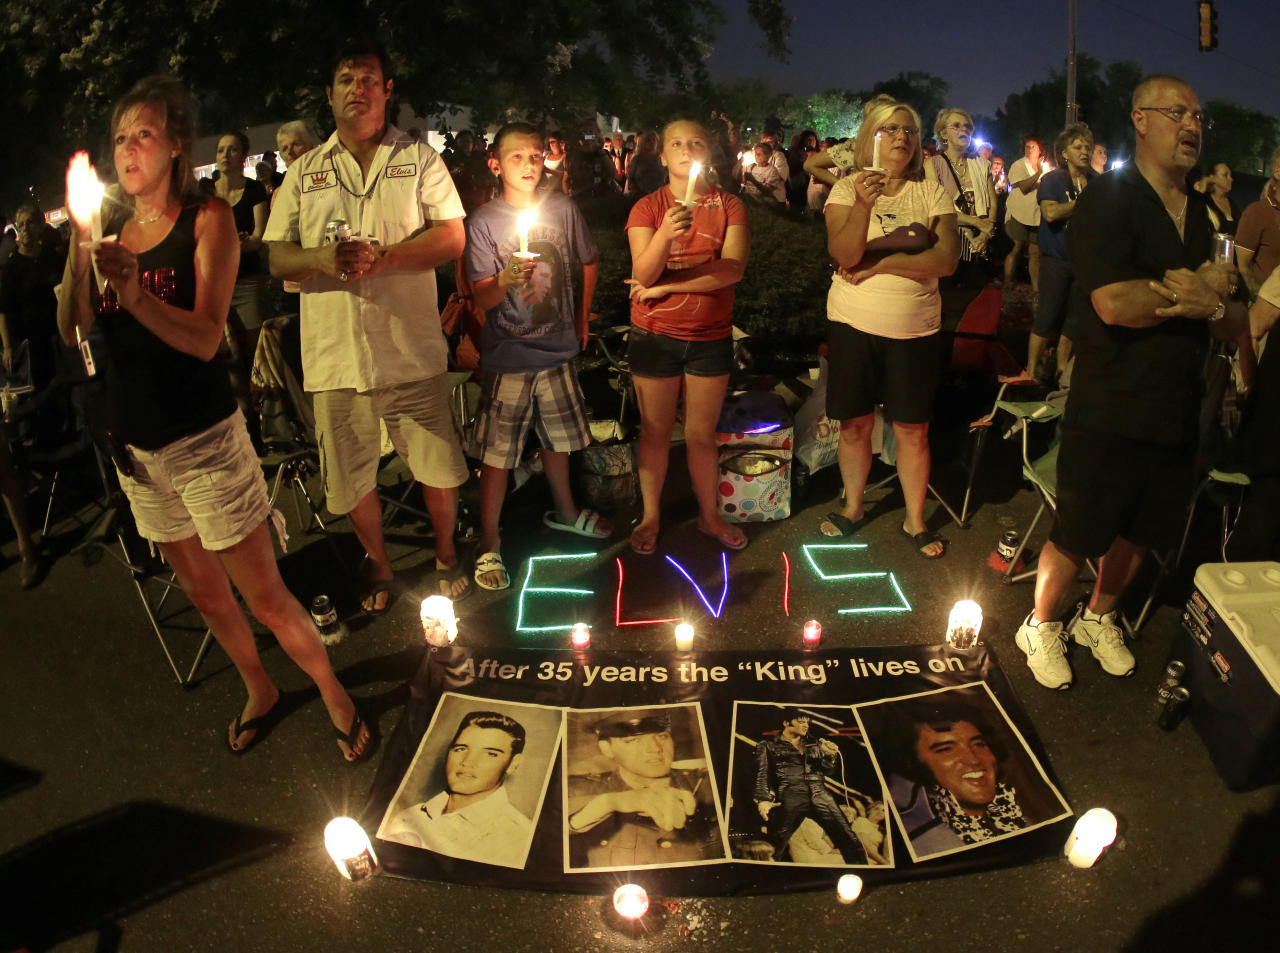 Elvis Presley fans take part in a candlelight vigil at Graceland, Presley's Memphis, Tenn. home, on Wednesday, Aug. 15, 2012. Fans from around the world are at Graceland to commemorate the 35th anniversary of Presley's death. (AP Photo/Mark Humphrey)